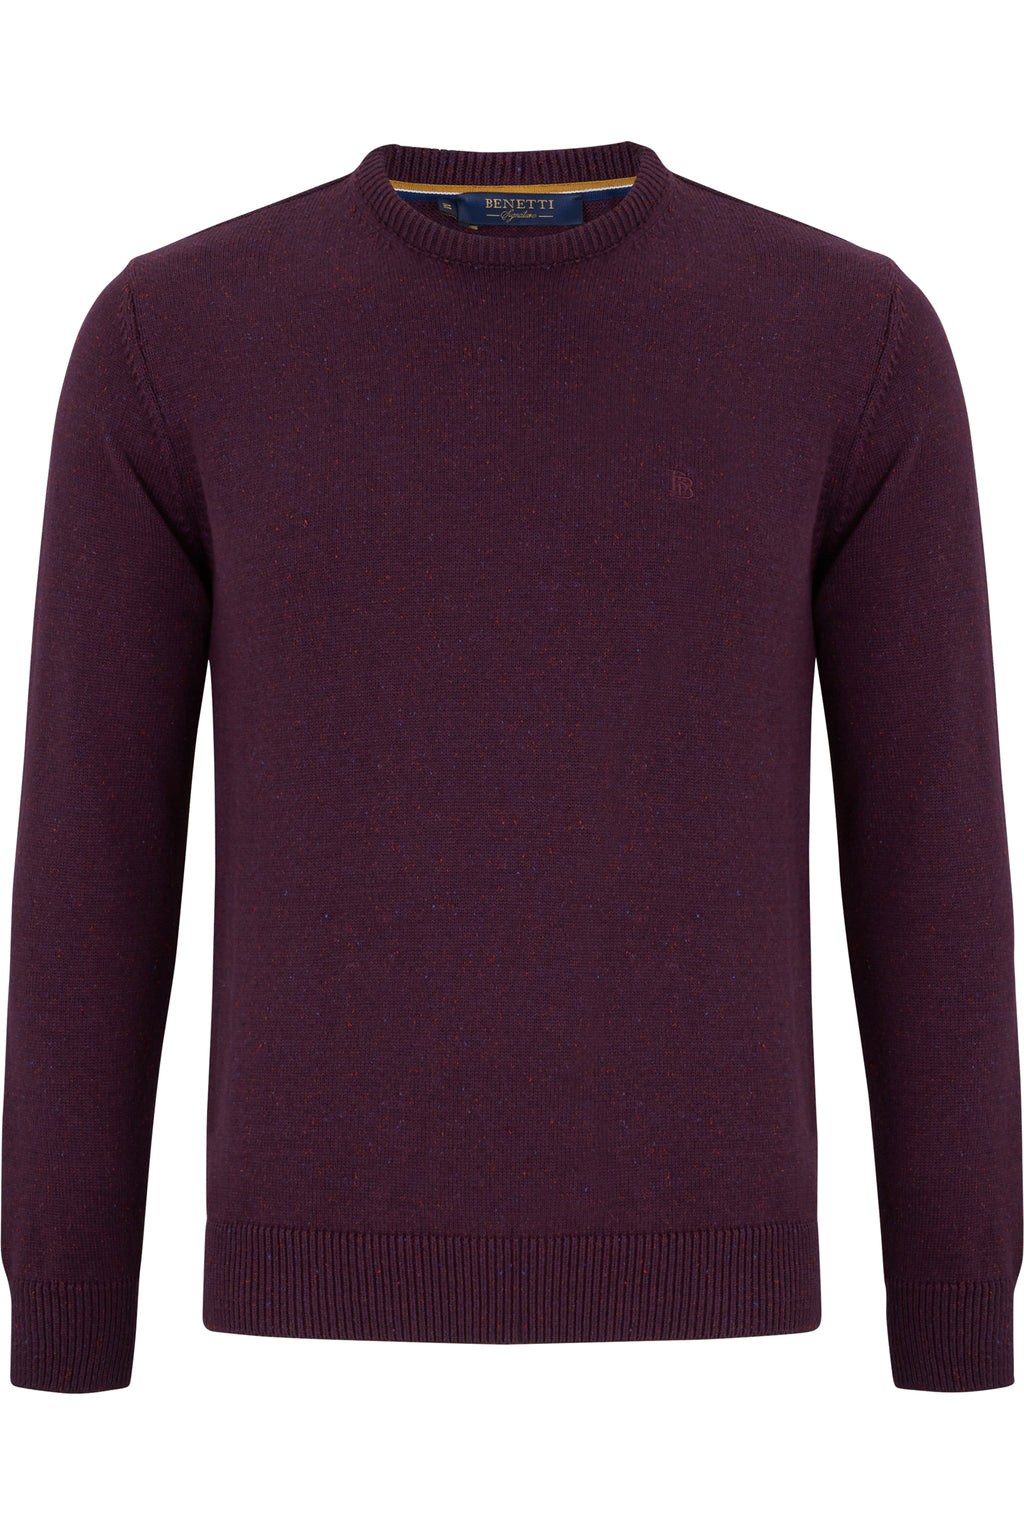 Benetti Nope Crew Neck Knitwear - Grape Knitwear - jjdonnelly